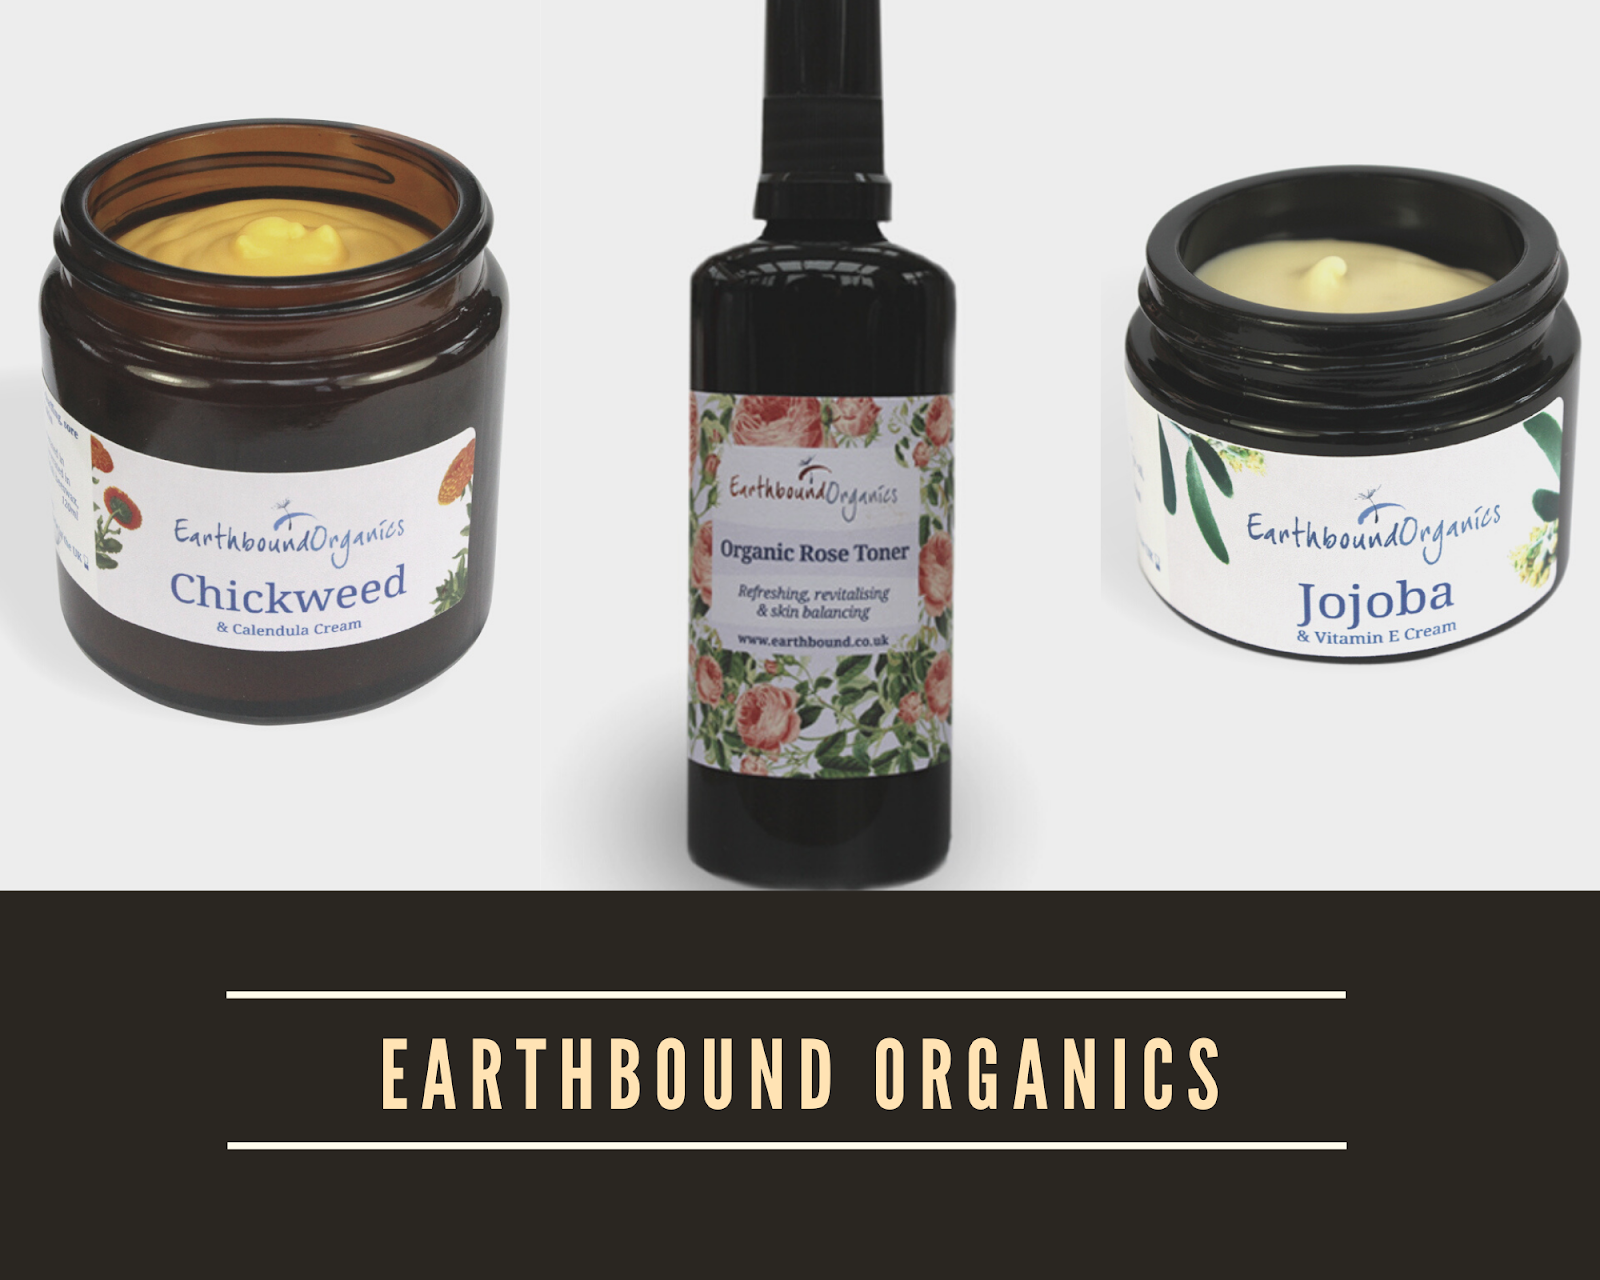 Earthbound Organics natural skincare from Wales